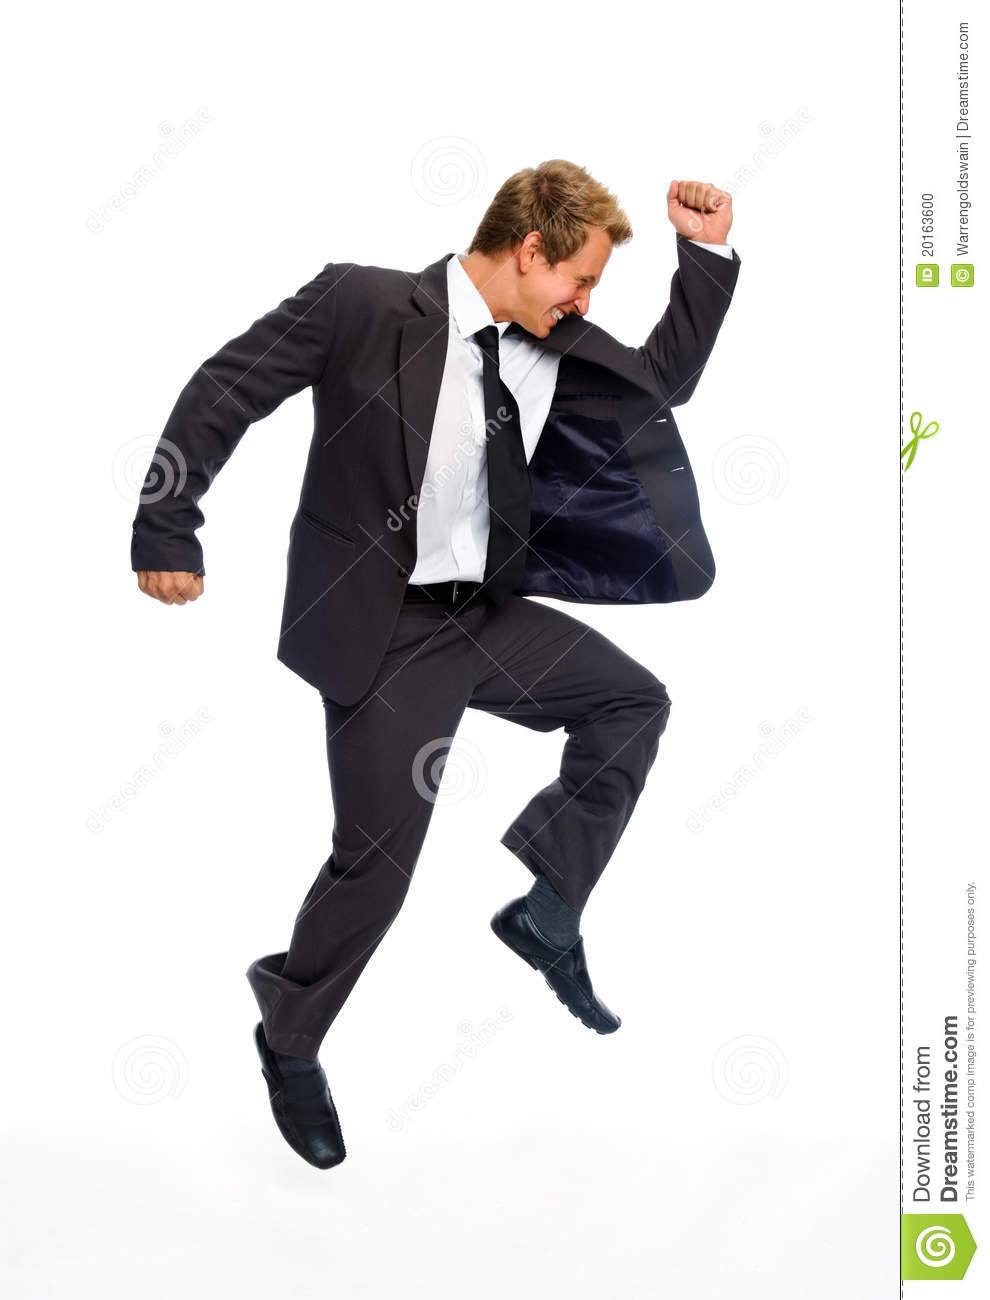 Jumping Businessman Stock Photo Image Of Businessperson